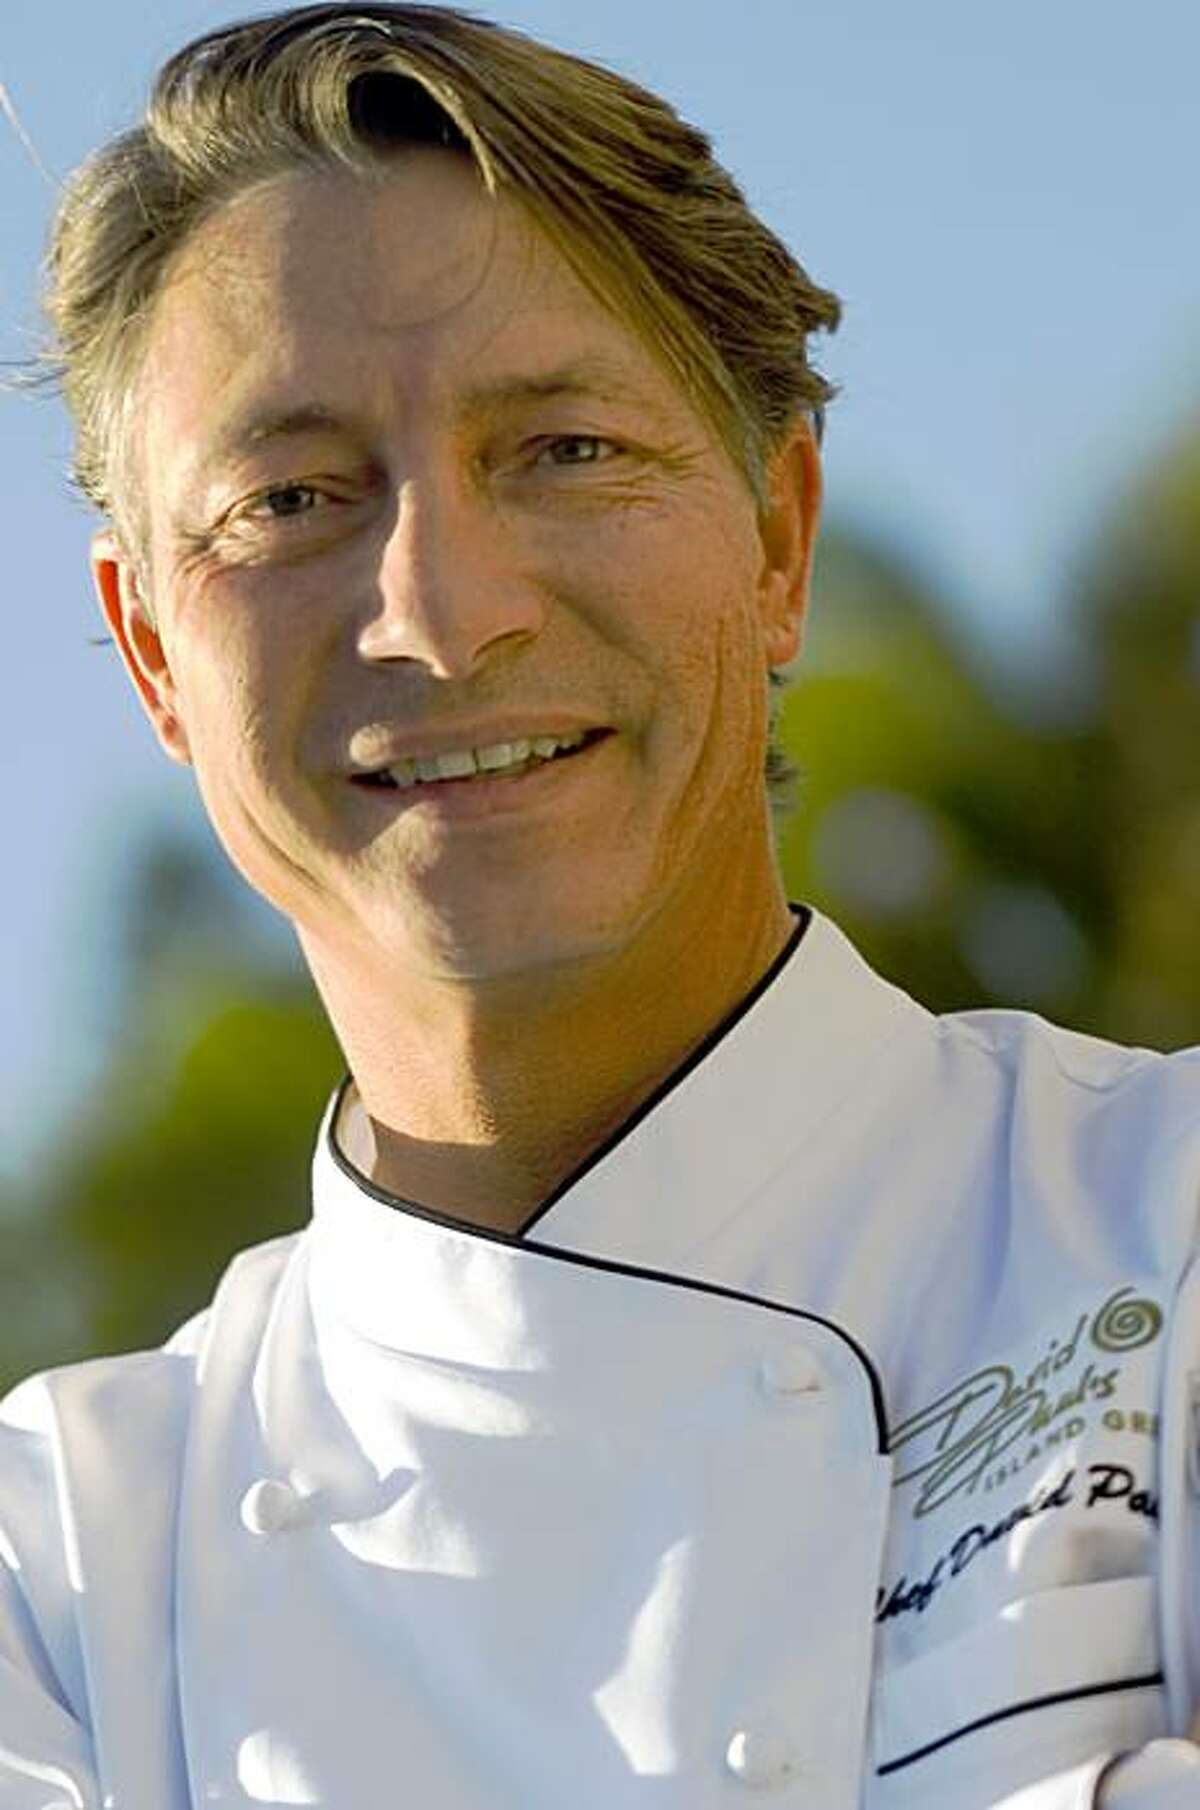 Gourmet chef David Paul Johnson has returned to Maui with a fresh approach at David Paul's Island Grill. David Paul's Island Grill Lahaina, Maui, Hawaii March 11, 2009 ©2009 Tony Novak-Clifford Tony Novak-Clifford Photography 26 South Market Street Wailuku, Maui, Hawaii 96793 808.242.8773 http://www.tonynovak-clifford.com [#Beginning of Shooting Data Section] Nikon D2X 2009/03/12 04:24:37.0 RAW (12-bit) Image Size: Large (4288 x 2848) Lens: 17-55mm F/2.8 G Focal Length: 55mm Exposure Mode: Manual Metering Mode: Spot 2 sec - F/10 Exposure Comp.: 0 EV Sensitivity: ISO 100 Optimize Image: White Balance: Color Temp. (5300 K) AF Mode: Manual Flash Sync Mode: Flash Mode: Auto Flash Comp: Color Mode: Mode II (Adobe RGB) Tone Comp.: Less Contrast Hue Adjustment: 0∞ Saturation: Normal Sharpening: Normal Image Comment: Long Exposure NR: On High ISO NR: Off [#End of Shooting Data Section]